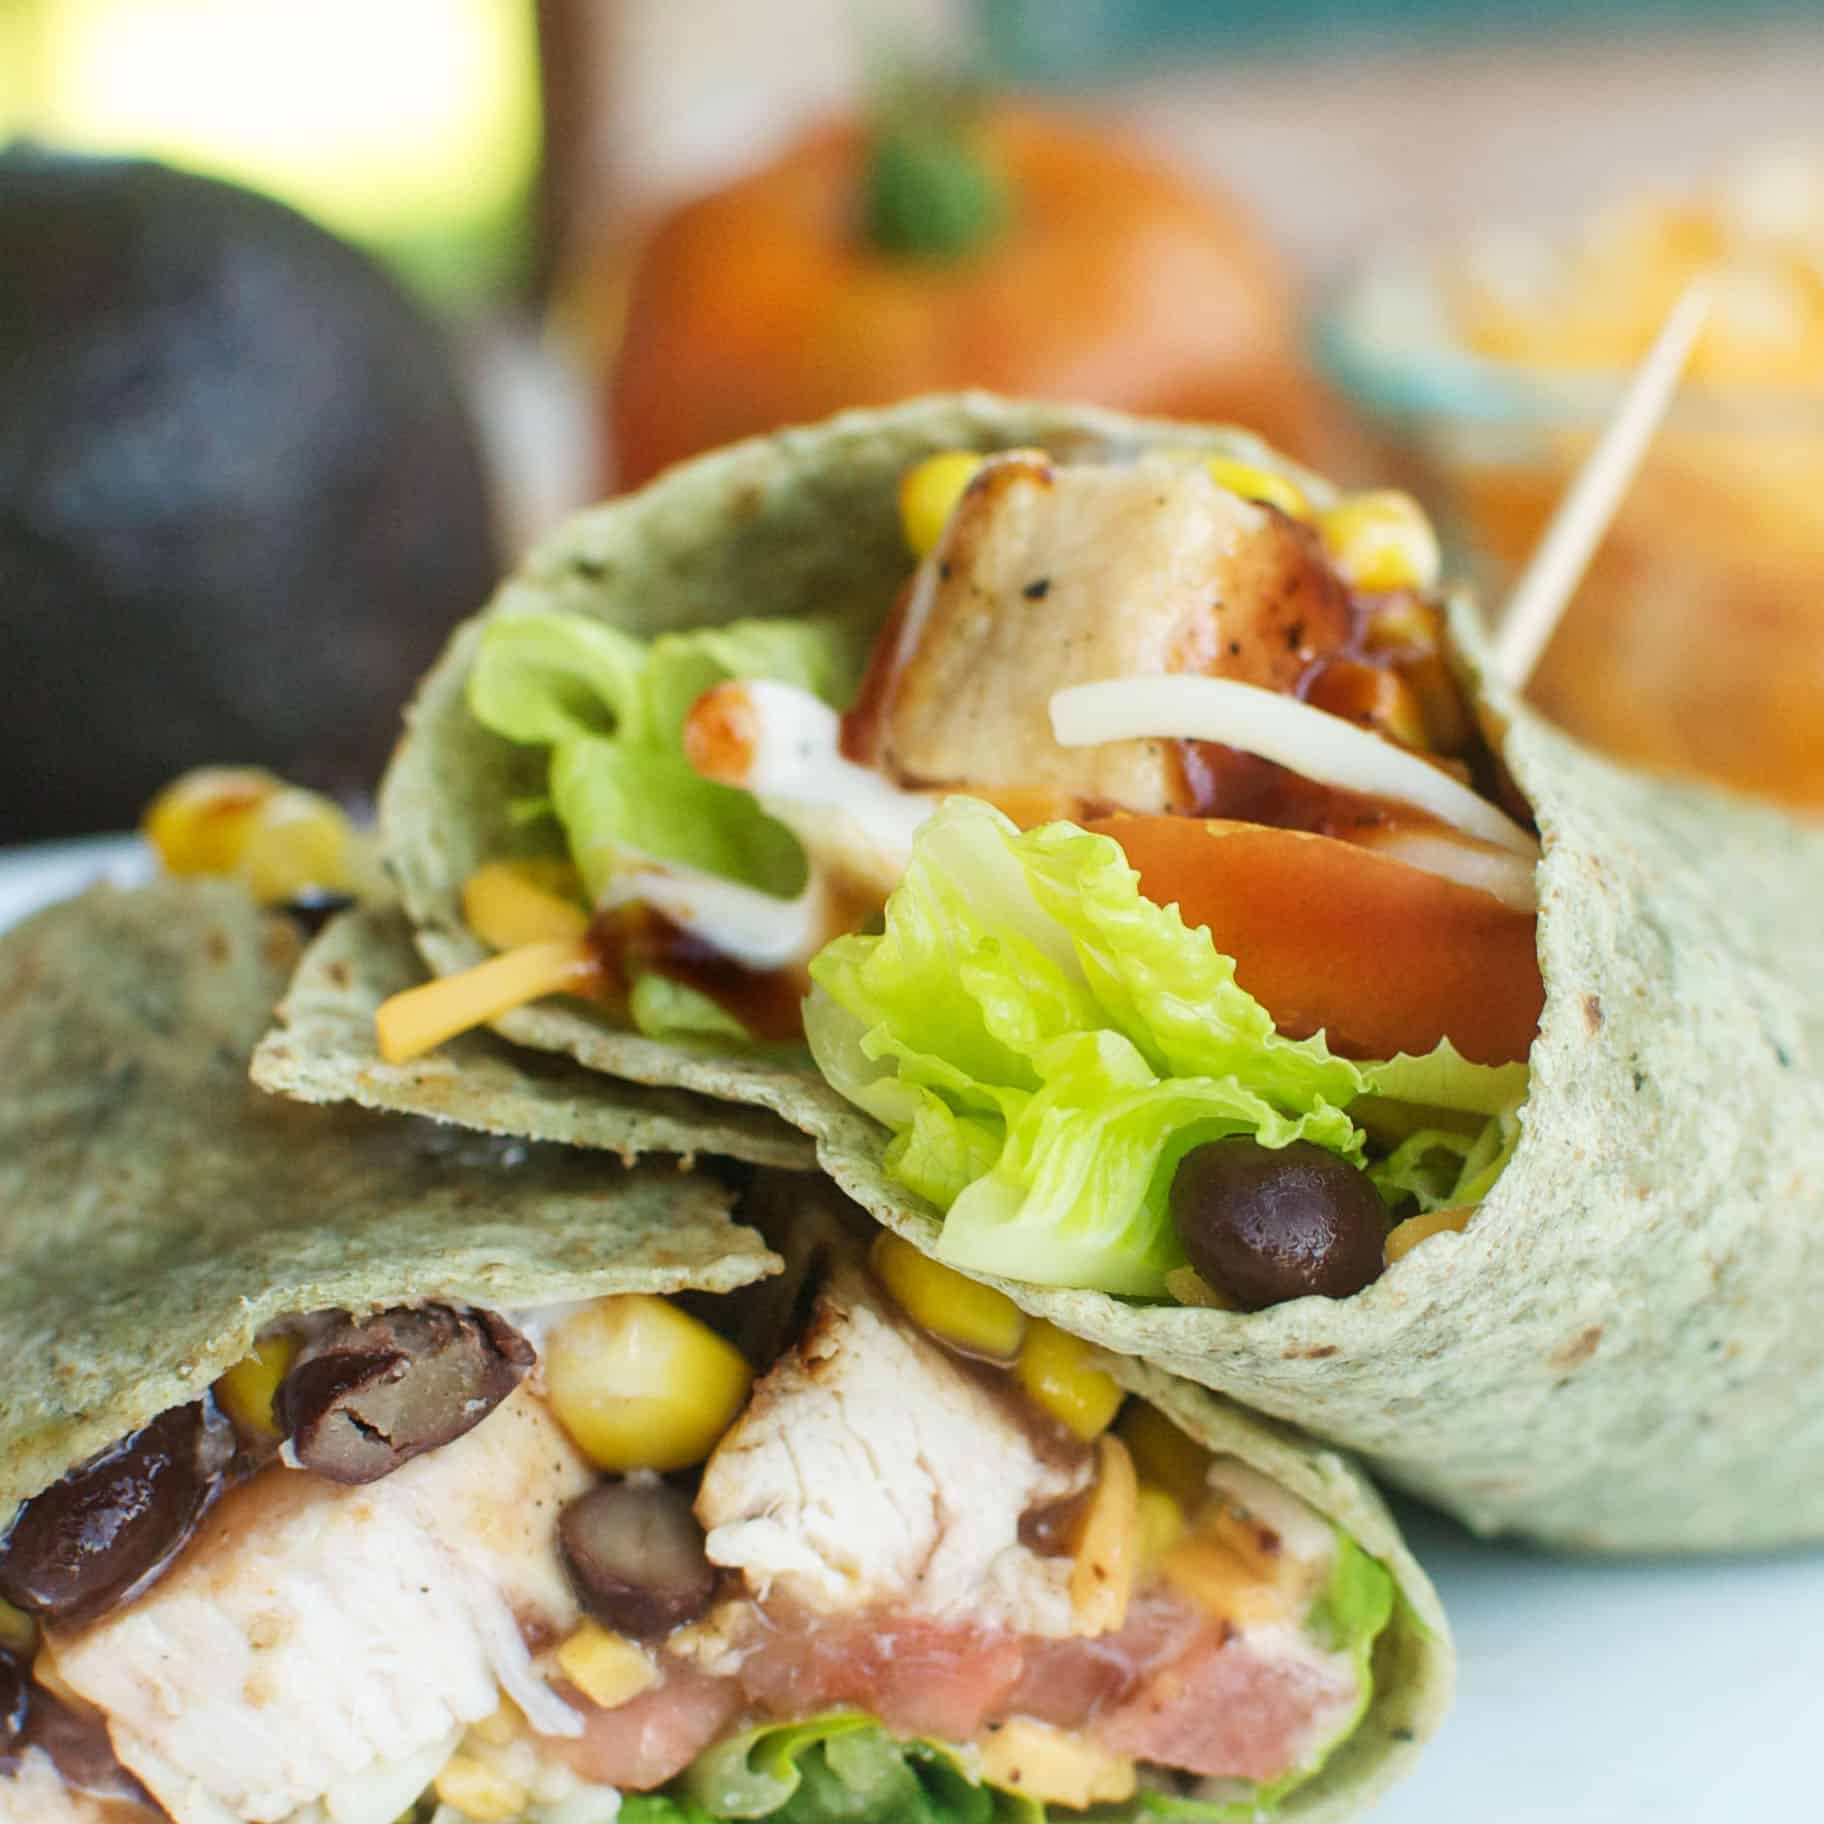 Whether you're looking for a quick lunch or don't want to heat up the house for dinner, BBQ Chicken Wraps are a perfectly tasty and easy option!